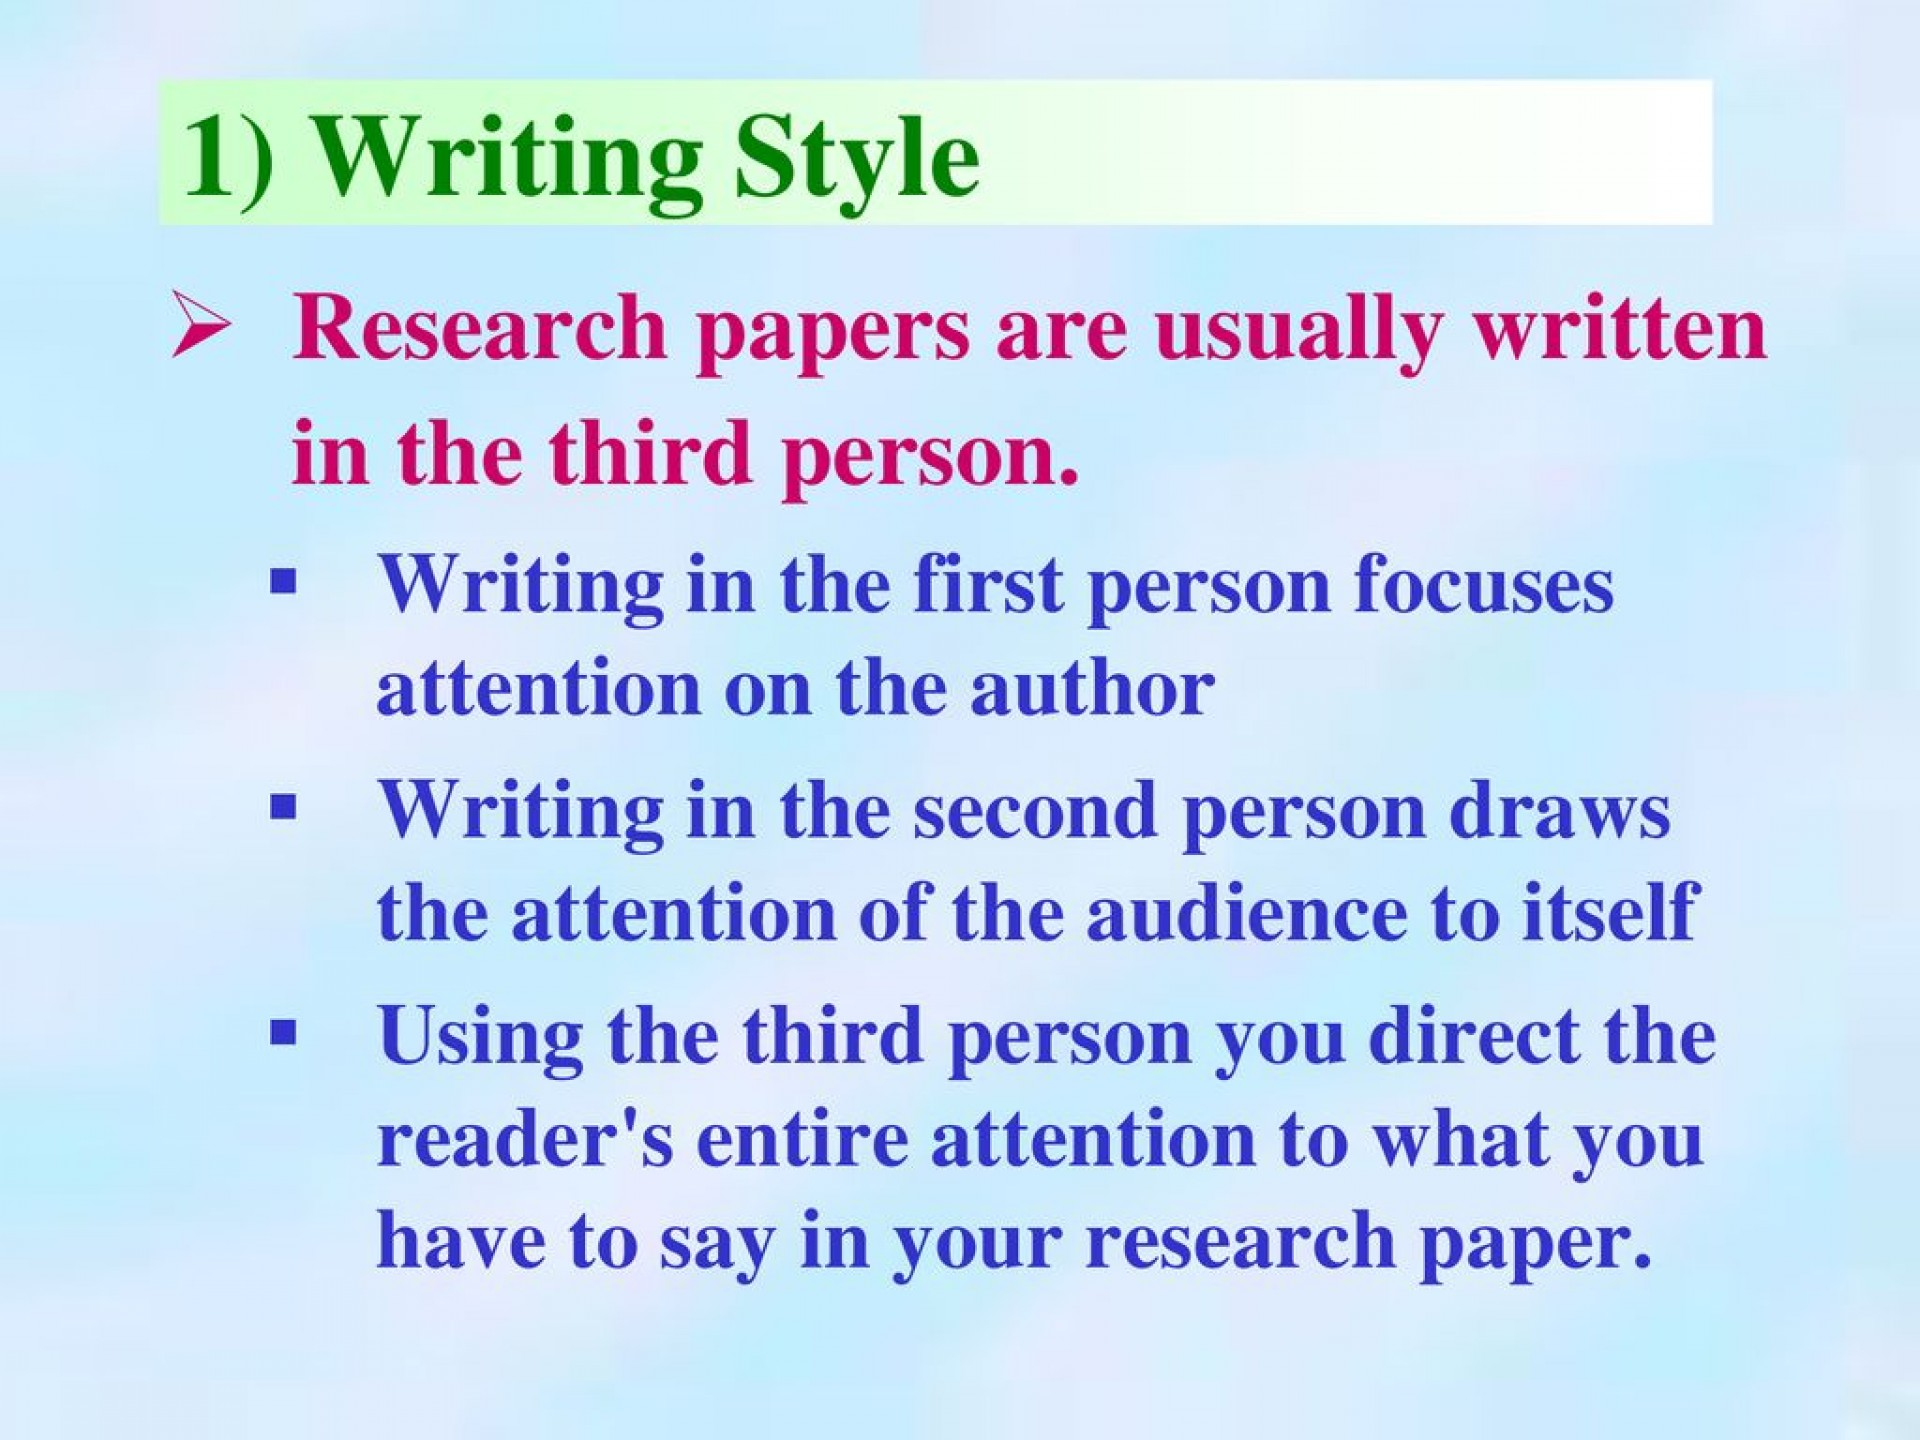 018 Research Paper Are Papers Written In First Person 129writingstyleresearchpapersareusuallywritteninthethirdperson Impressive Proposals The Is Voice 1920